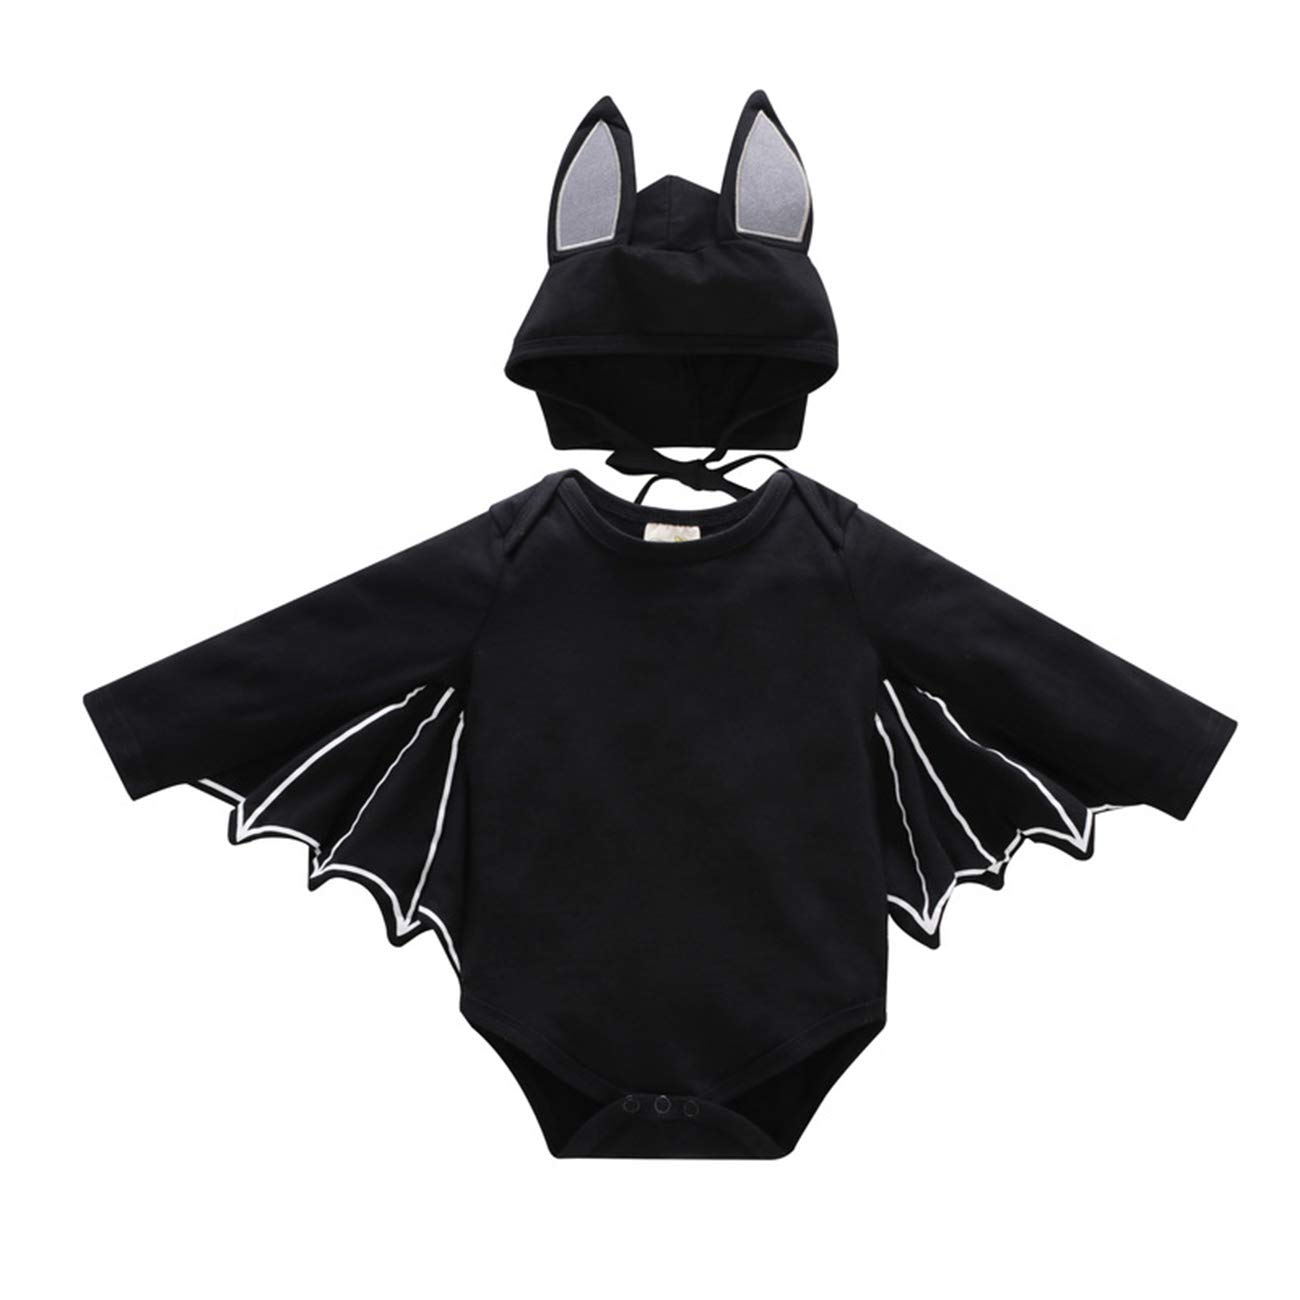 JIEEN Baby Girls Boys Halloween Costume Bat Sleeve Jumpsuit Hat 2 Pieces Set